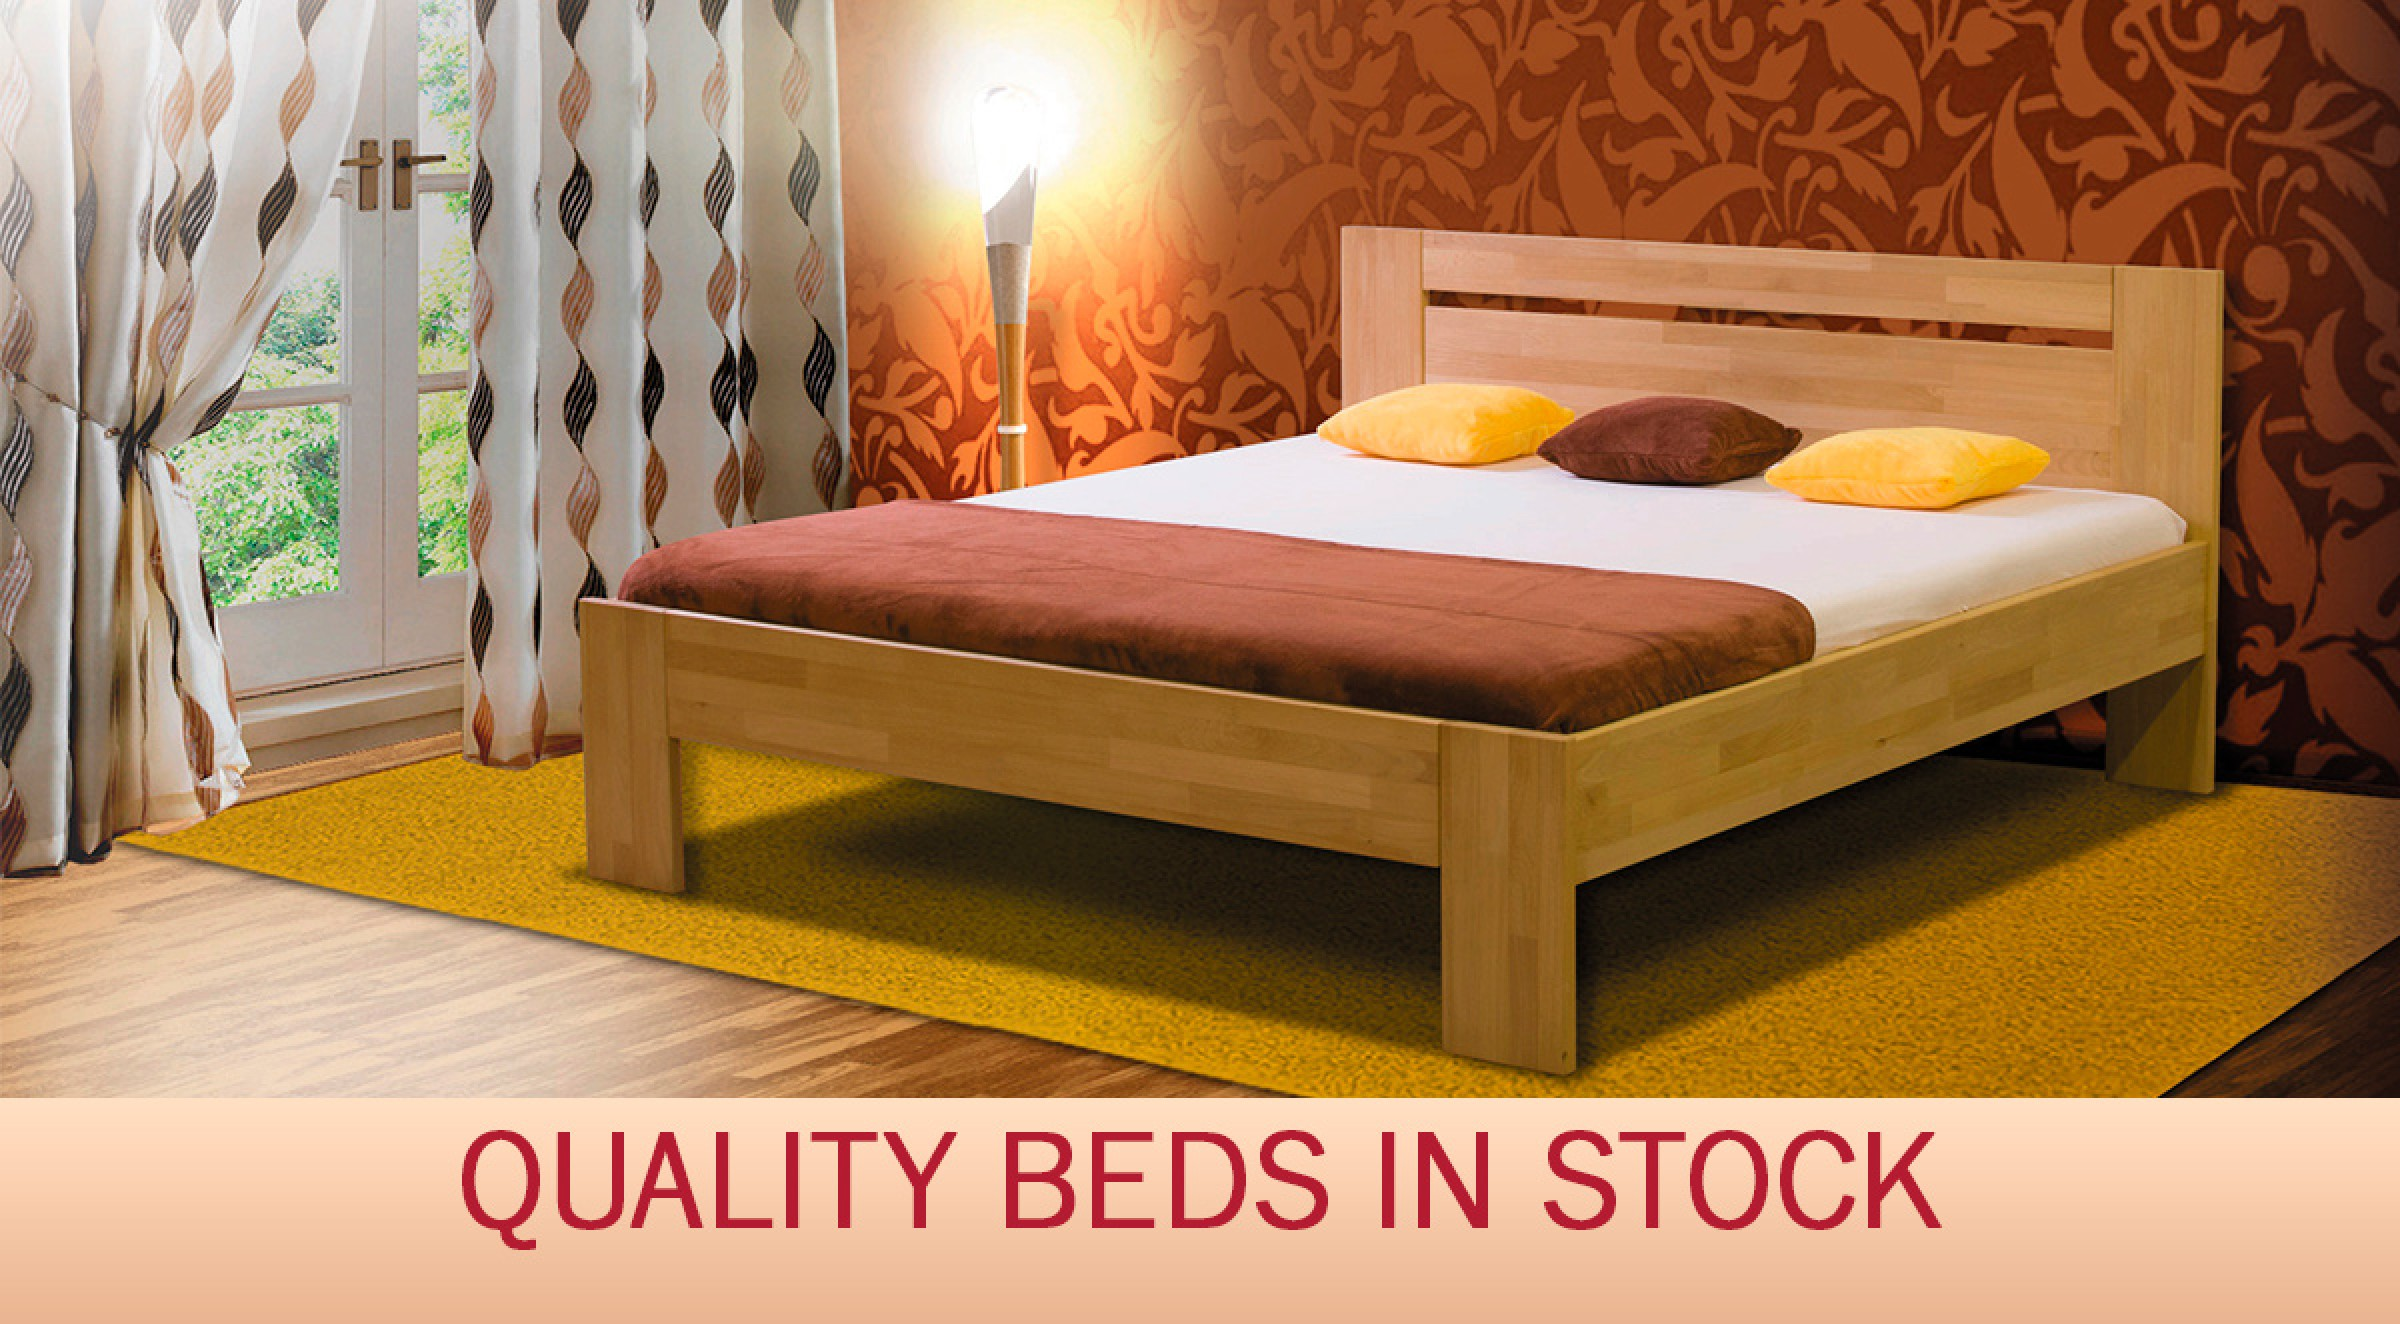 quality beds in stock